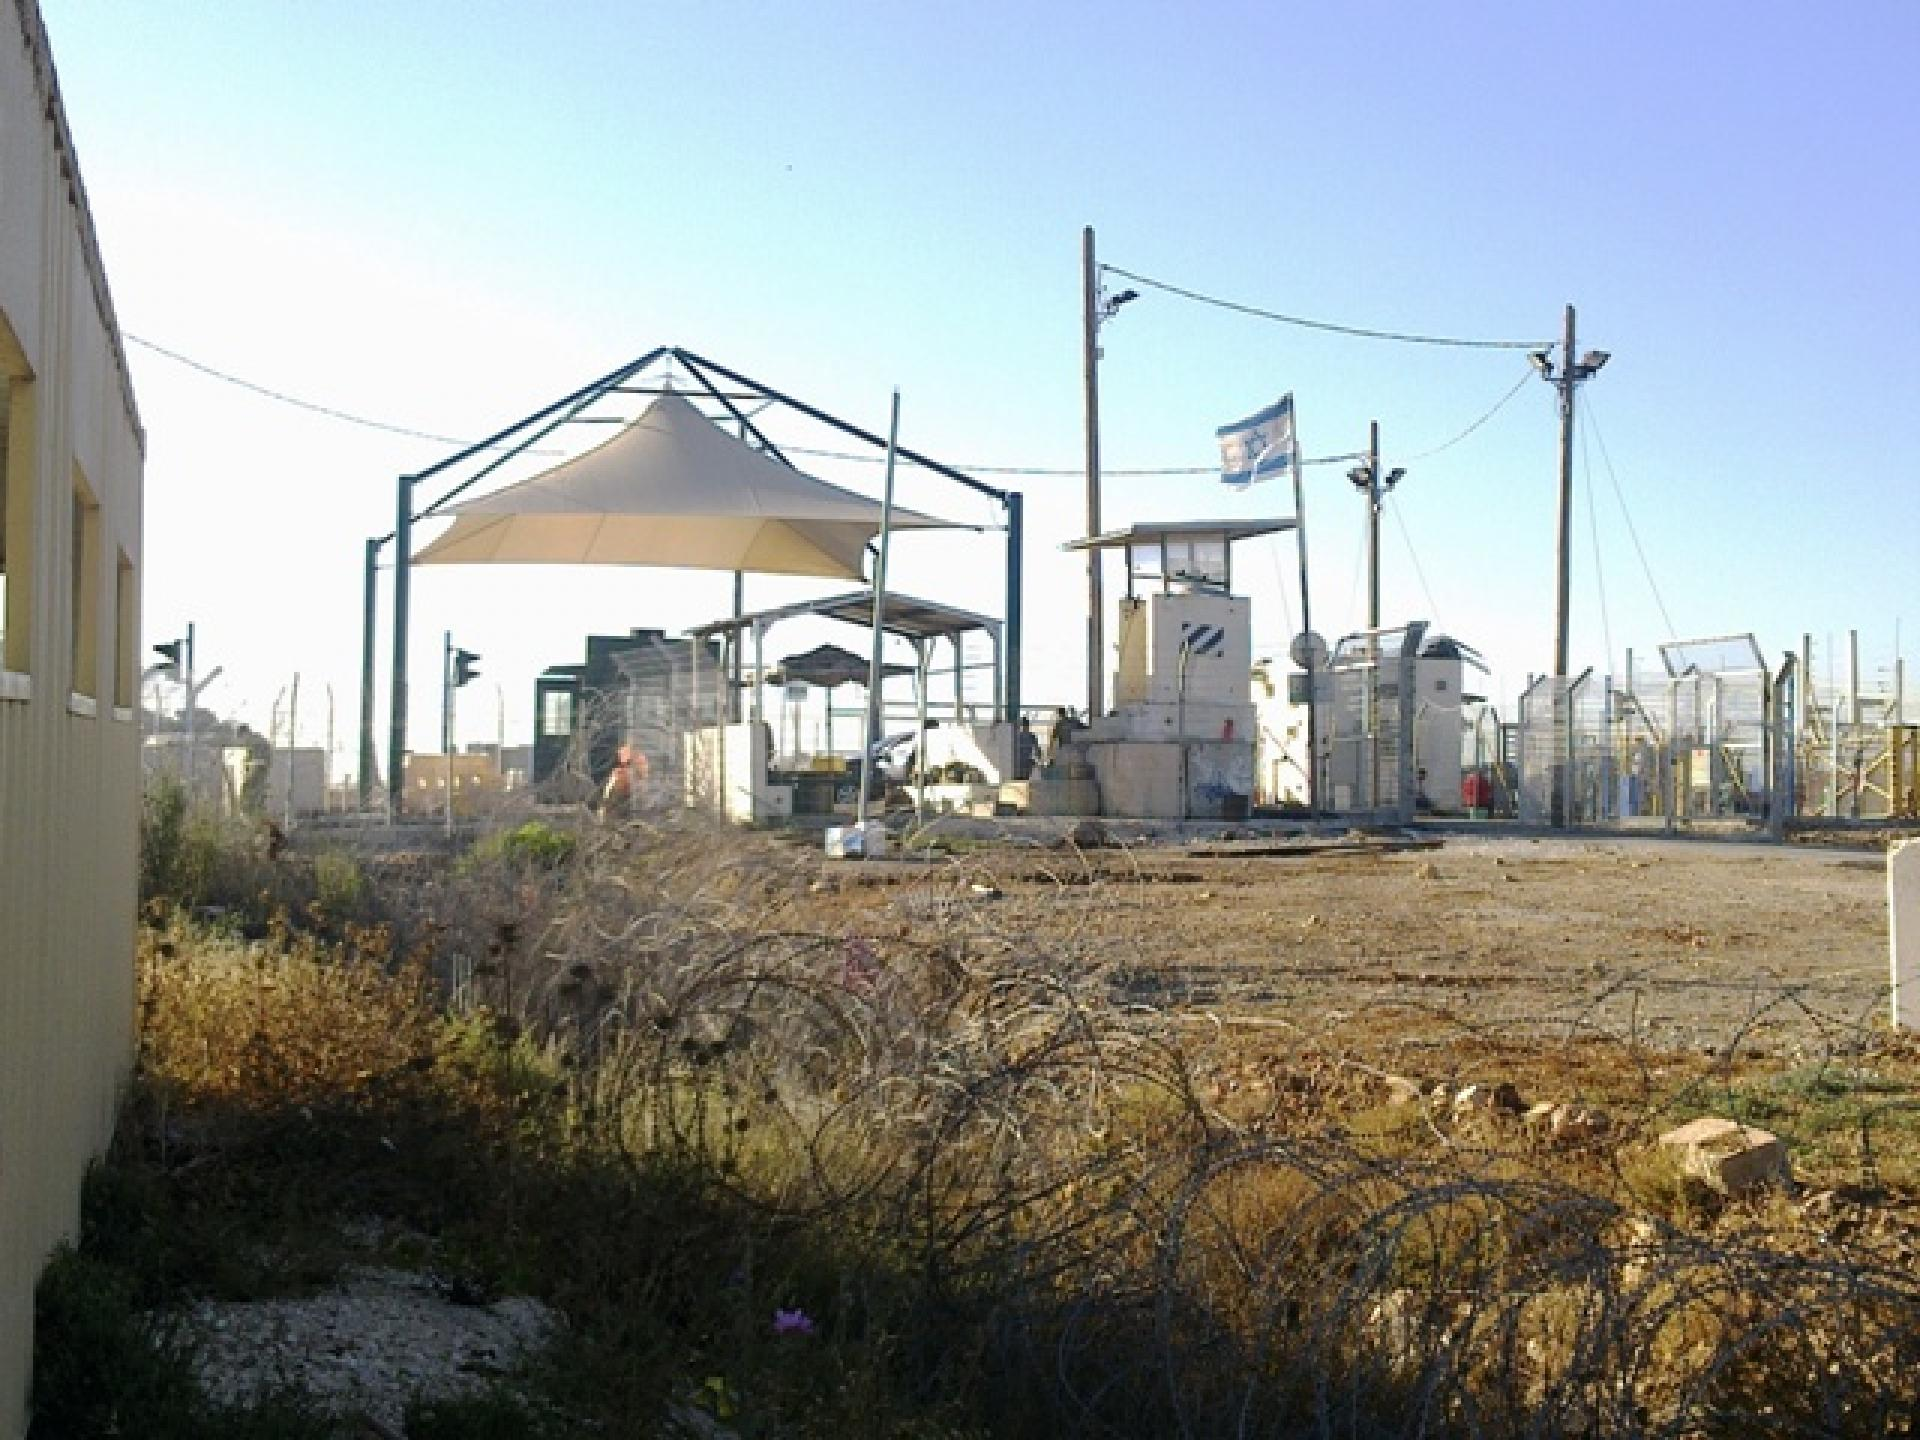 Tura/Shaked checkpoint 07.06.12